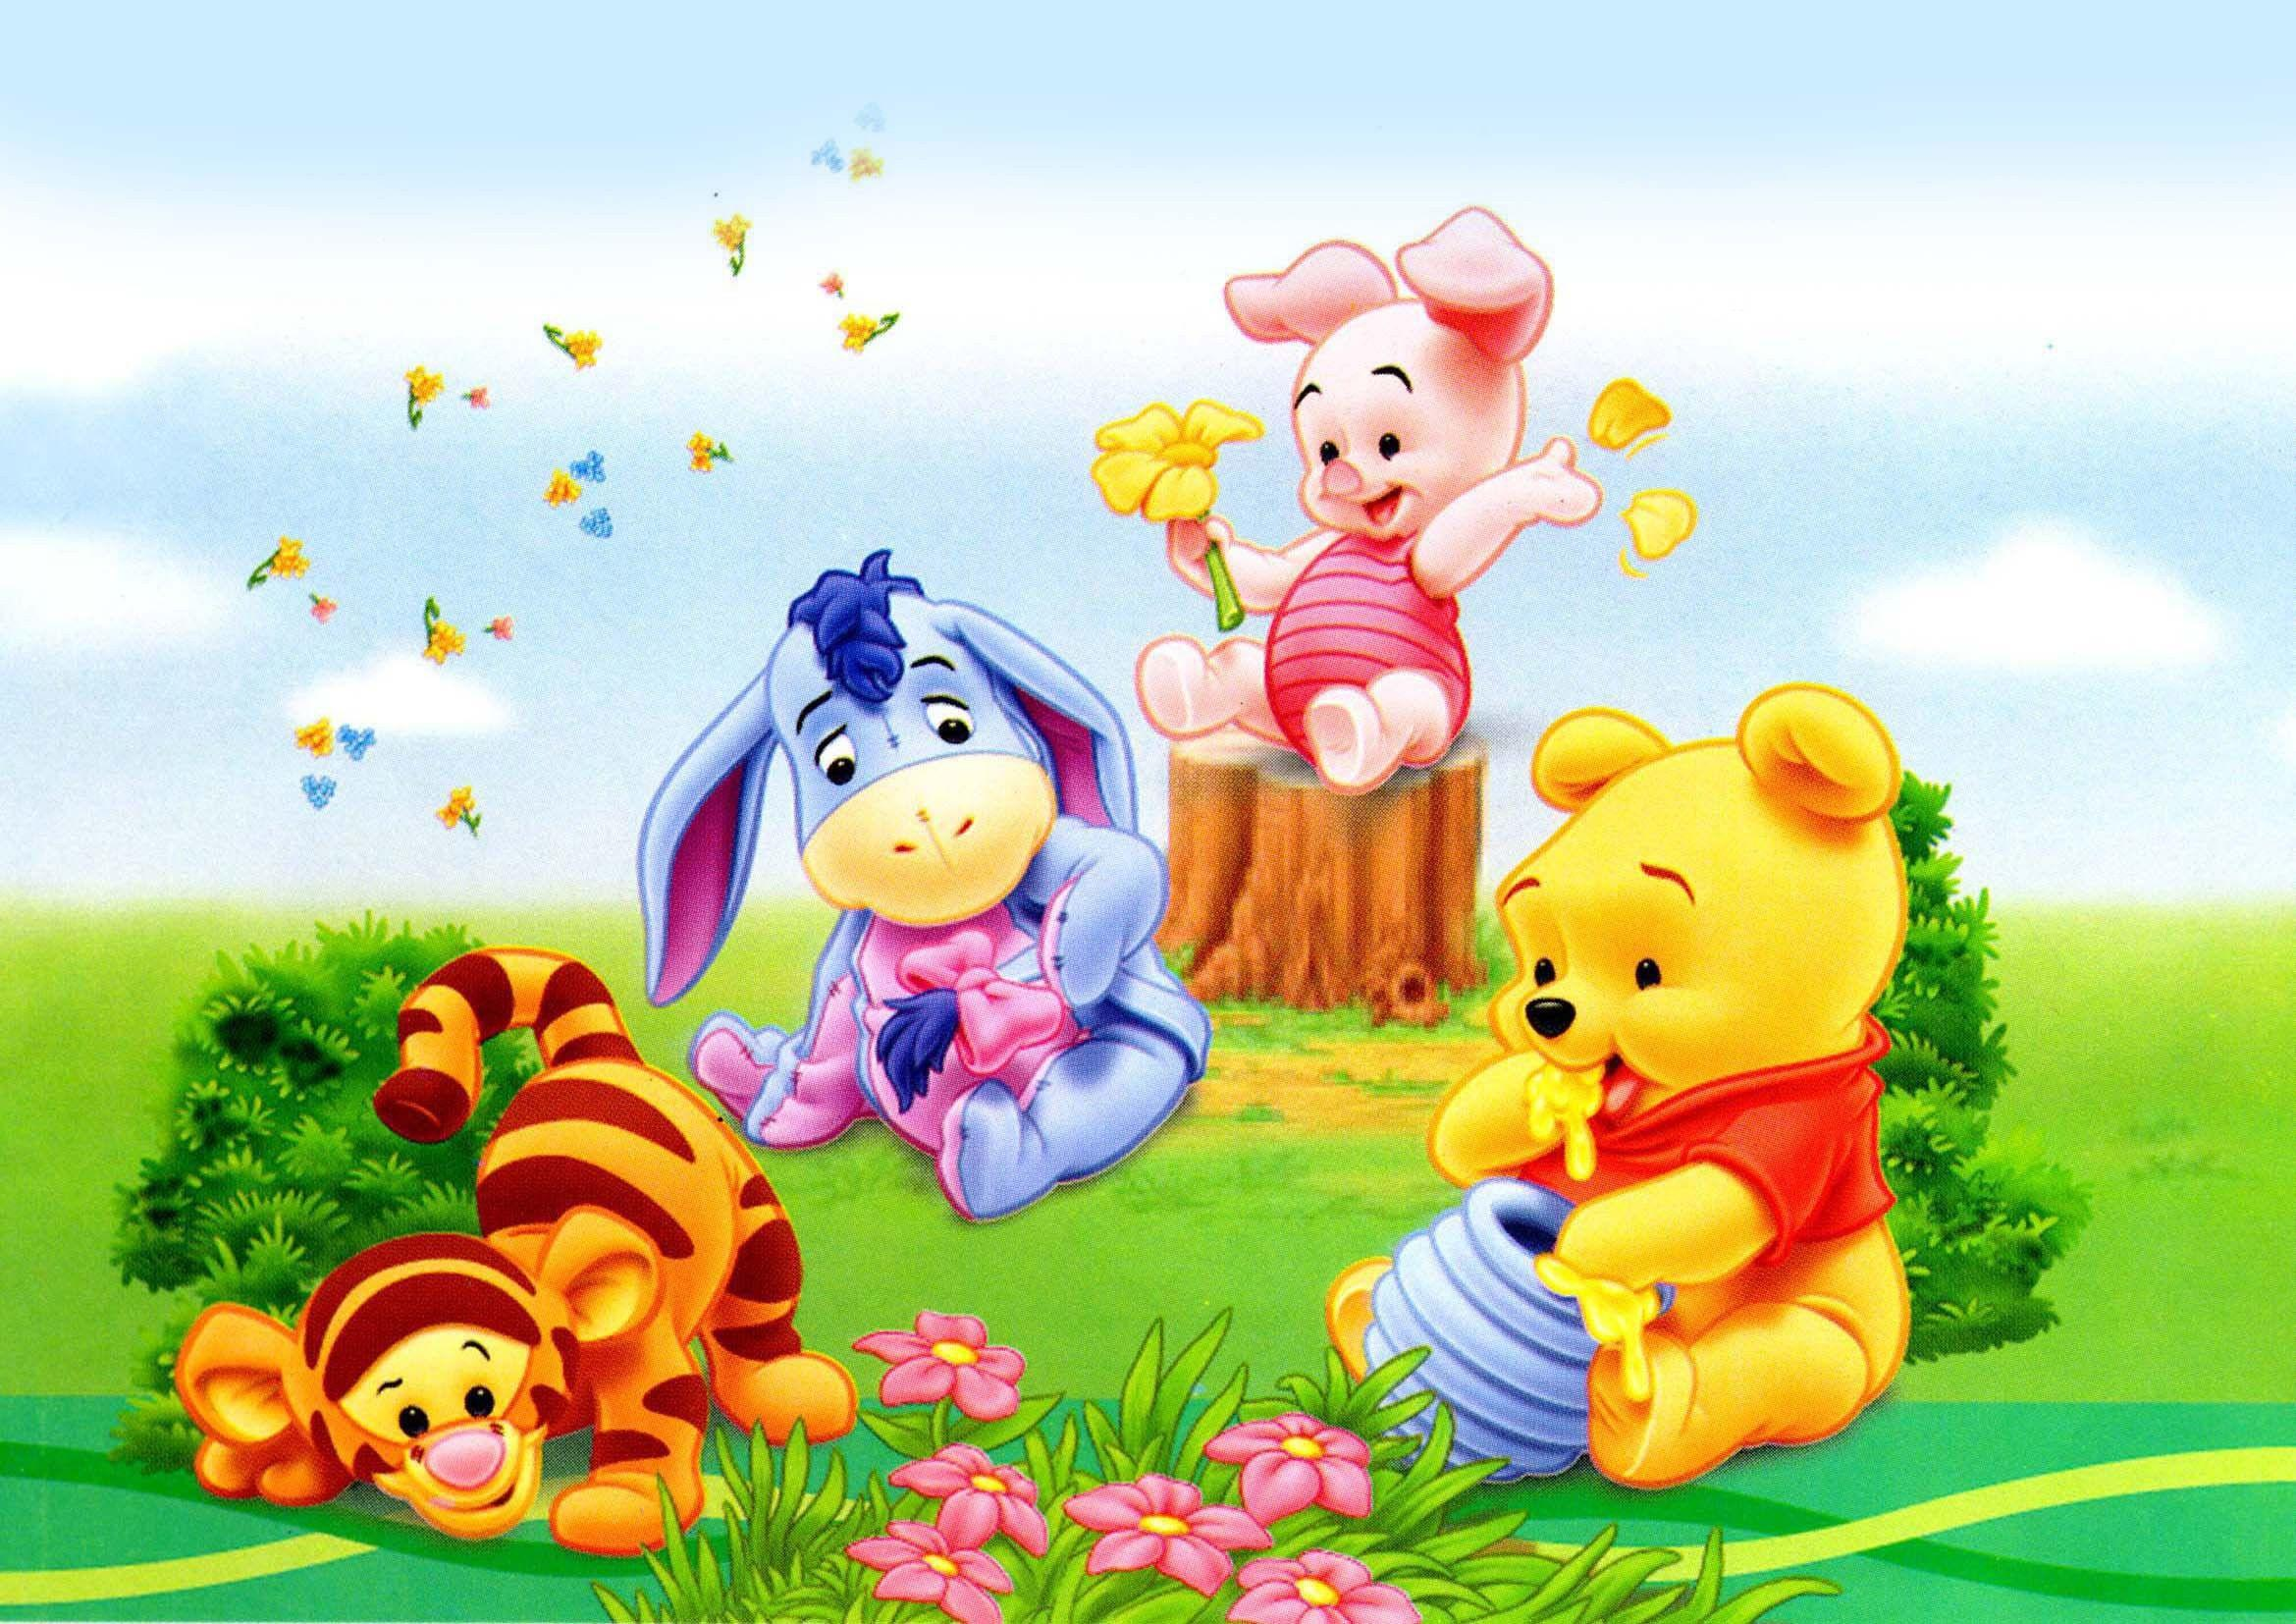 This is a graphic of Wild Winnie the Pooh as a Baby